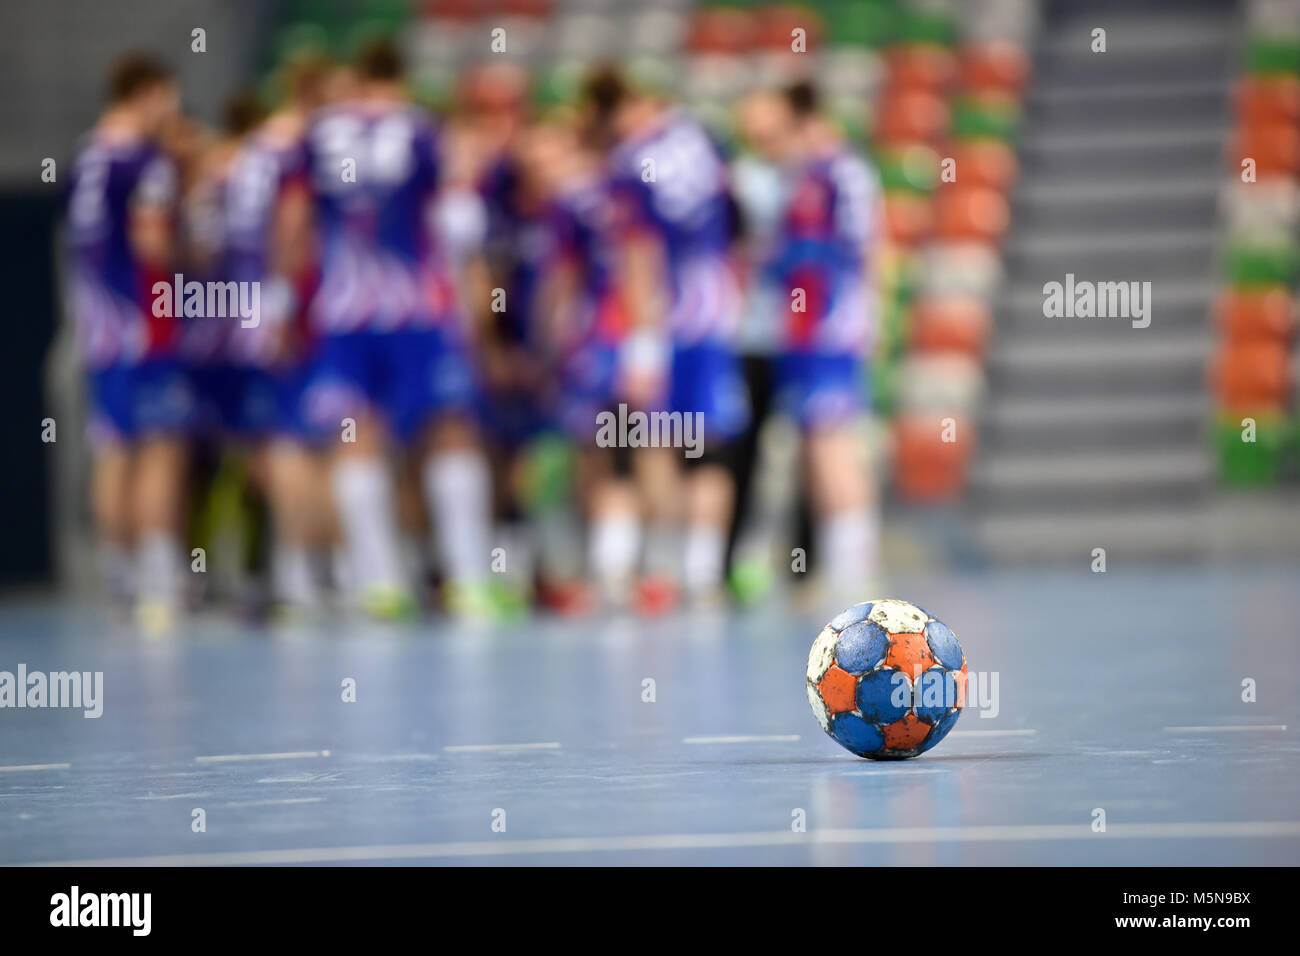 The ball during handball match time . - Stock Image